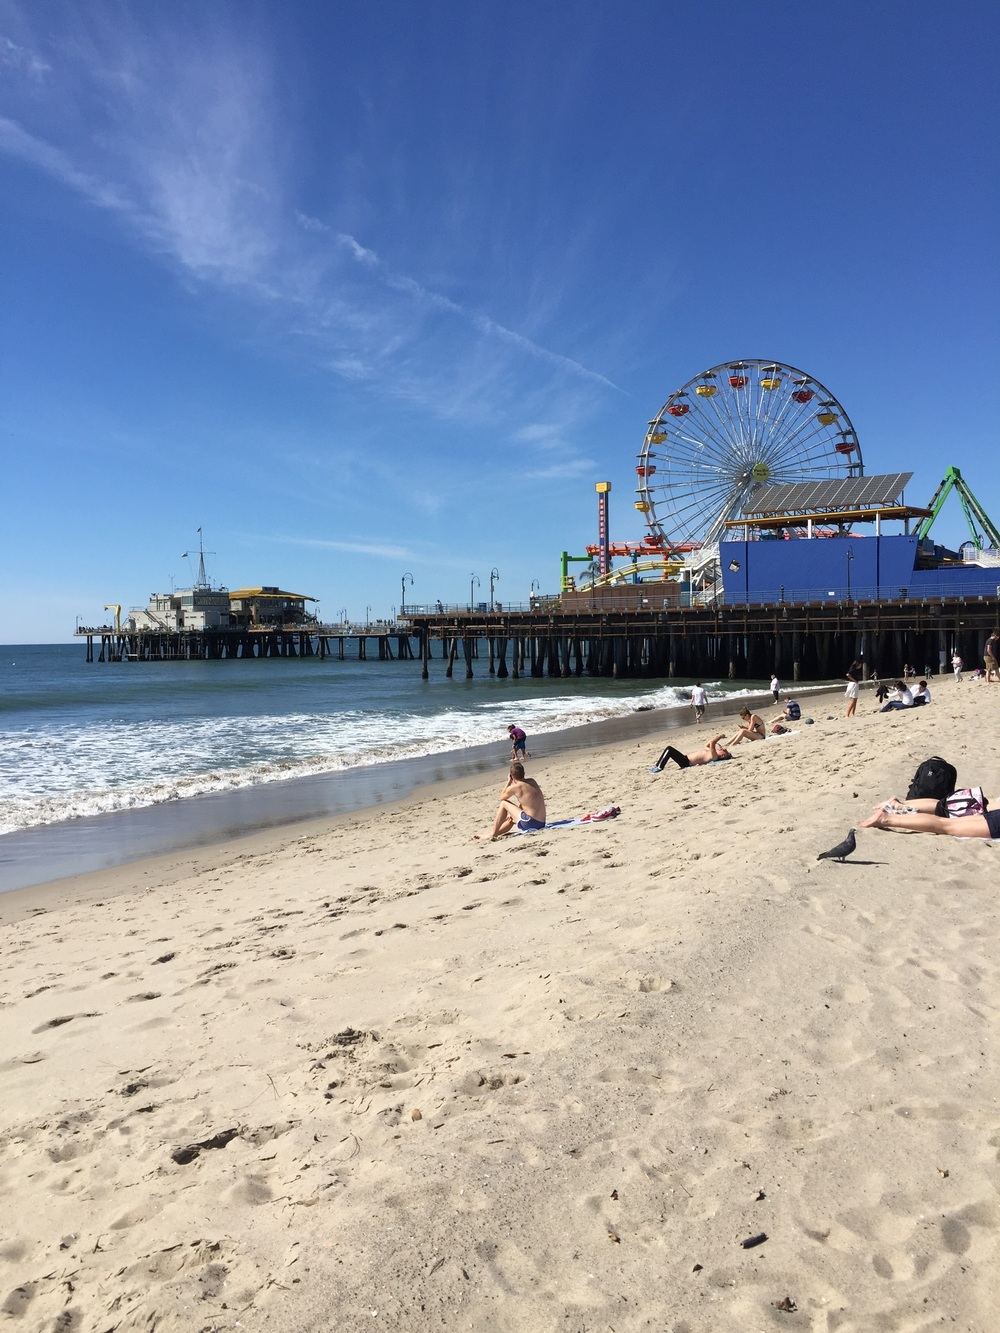 Santa Monica is a beautiful city west of downtown Los Angeles made up of 8.3 walkable miles. Santa Monica Beach is fringed by Palisades Park, with views over the Pacific Ocean.